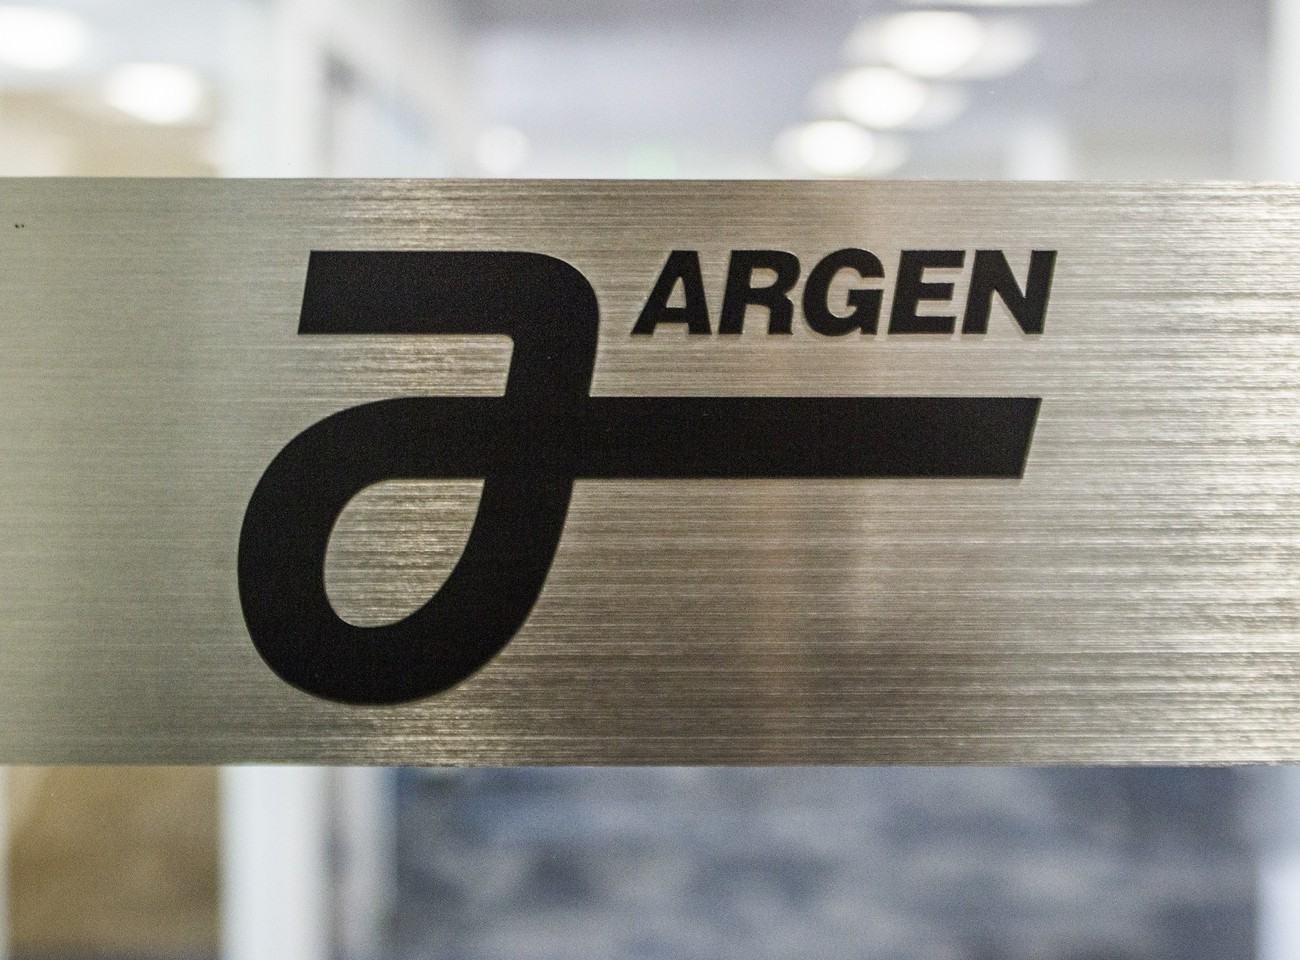 Argen Corporation Careers